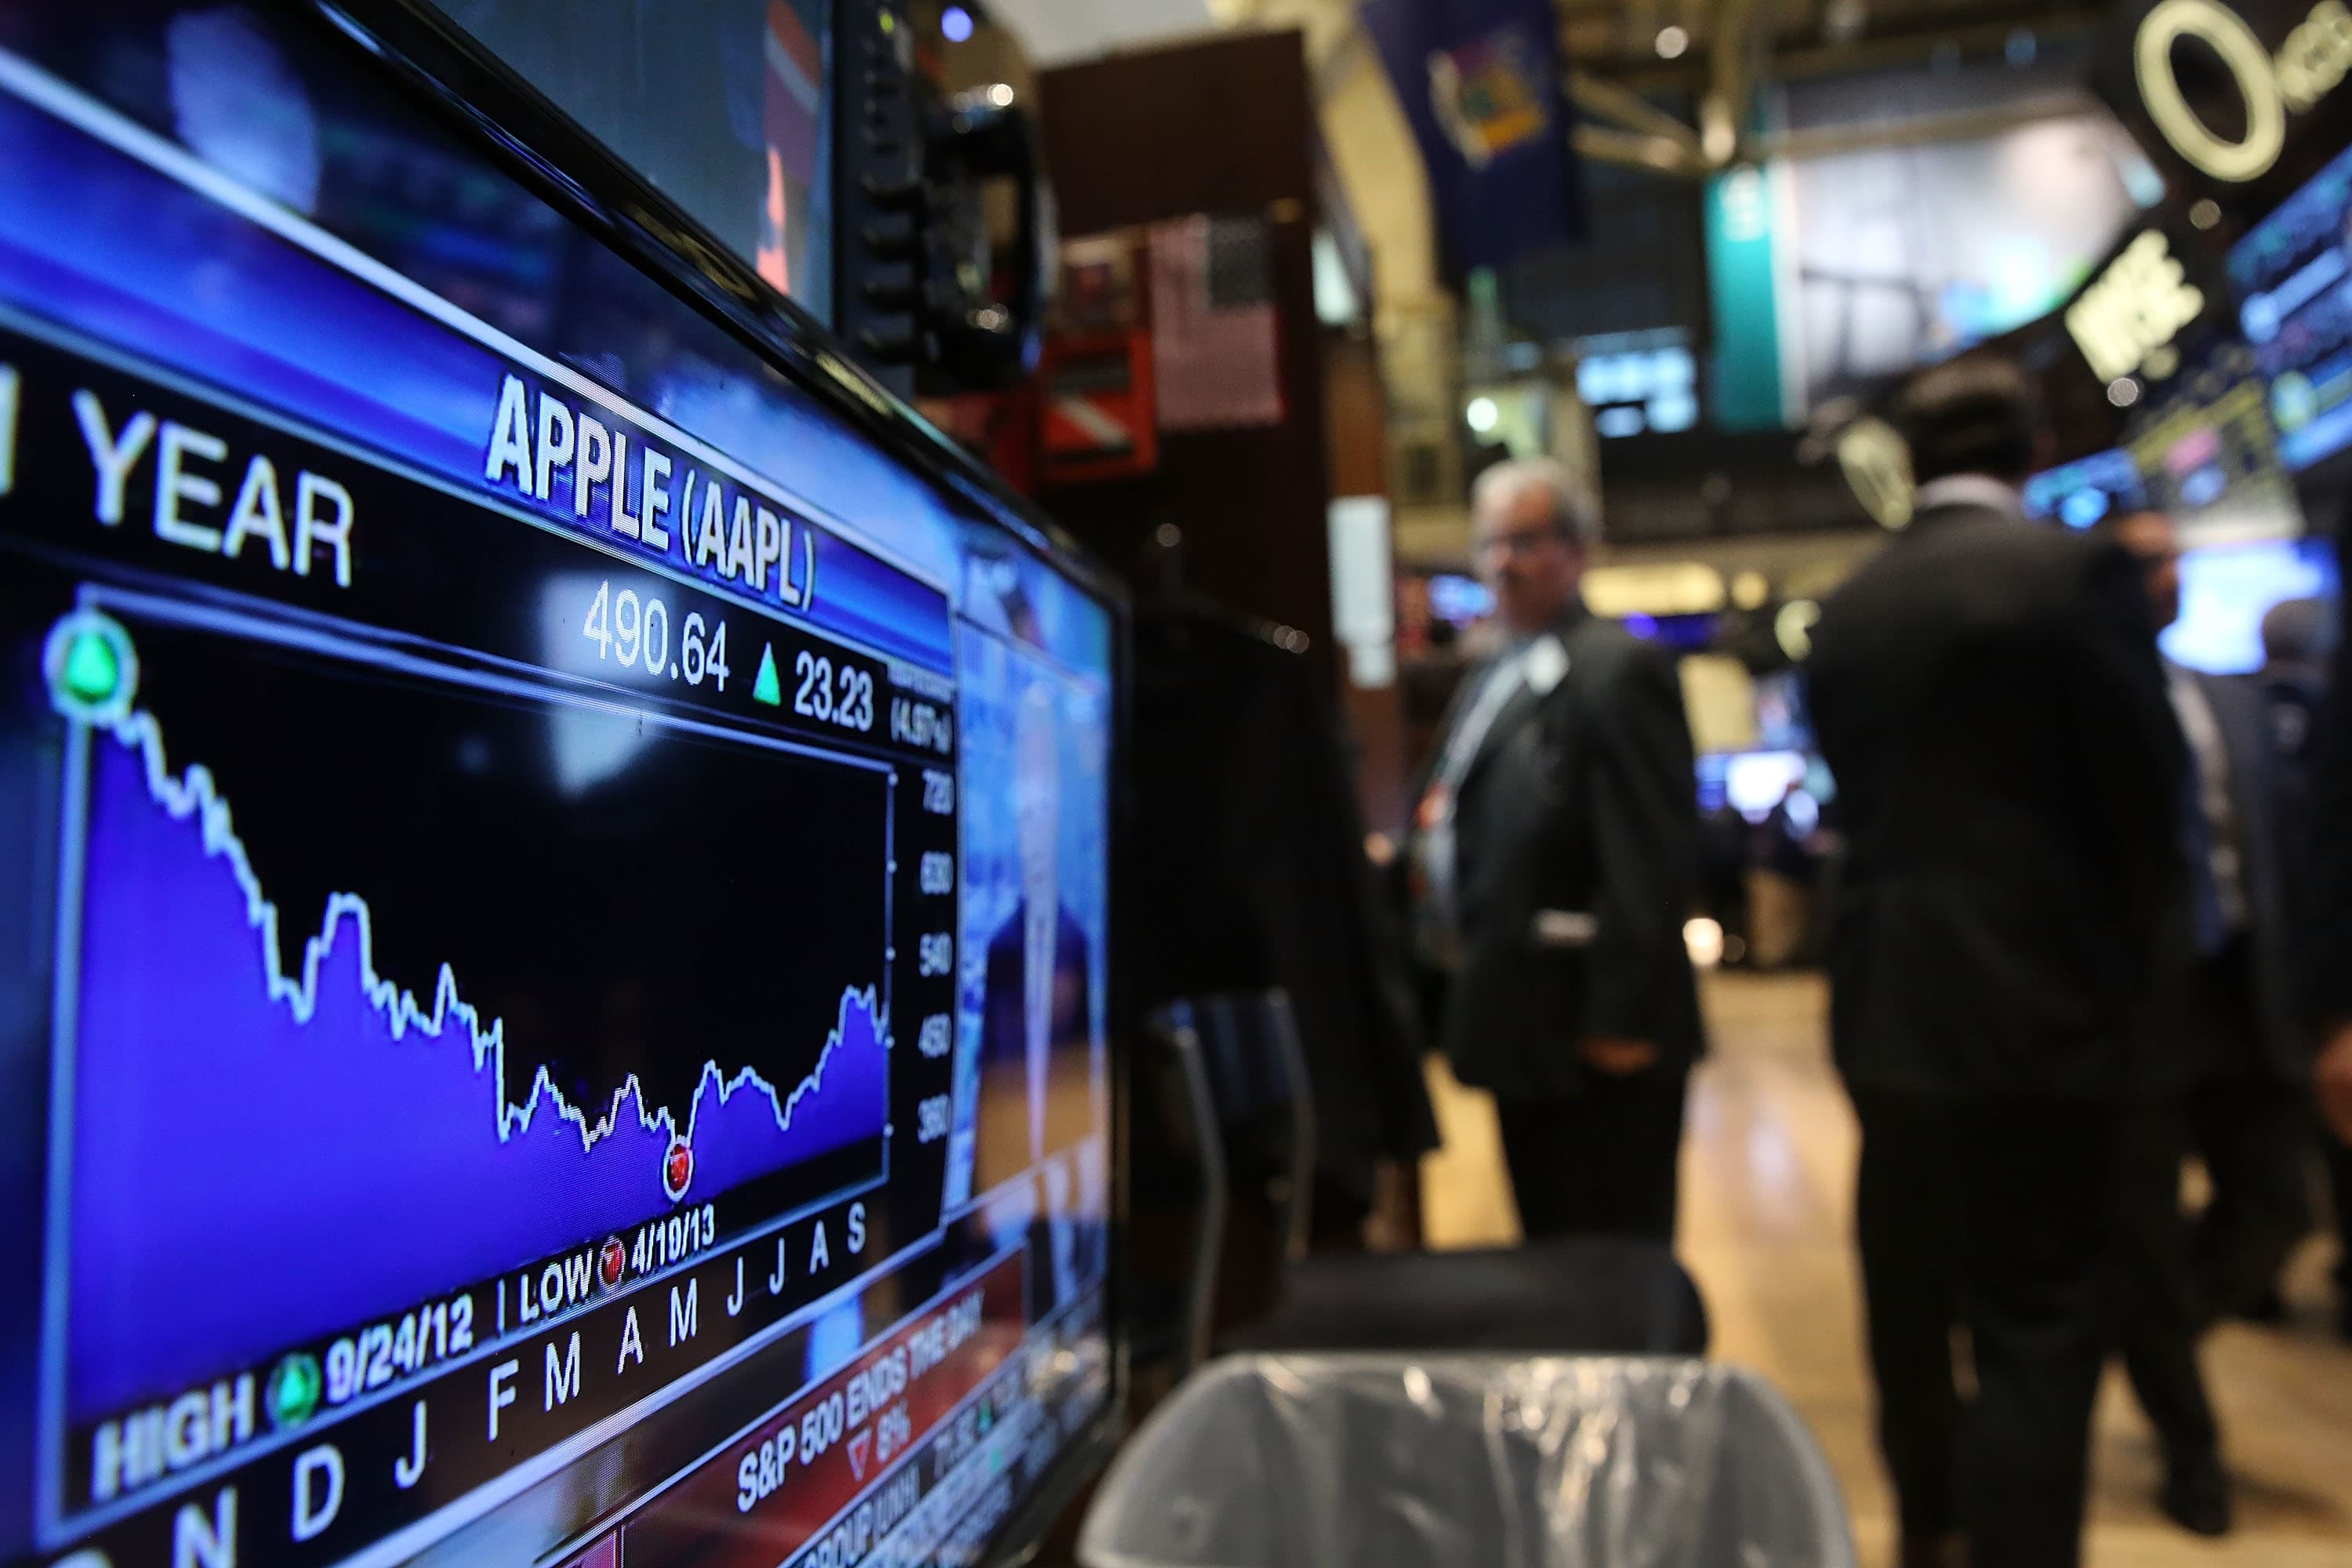 Apple could face some pressure before hitting record highs, trader warns